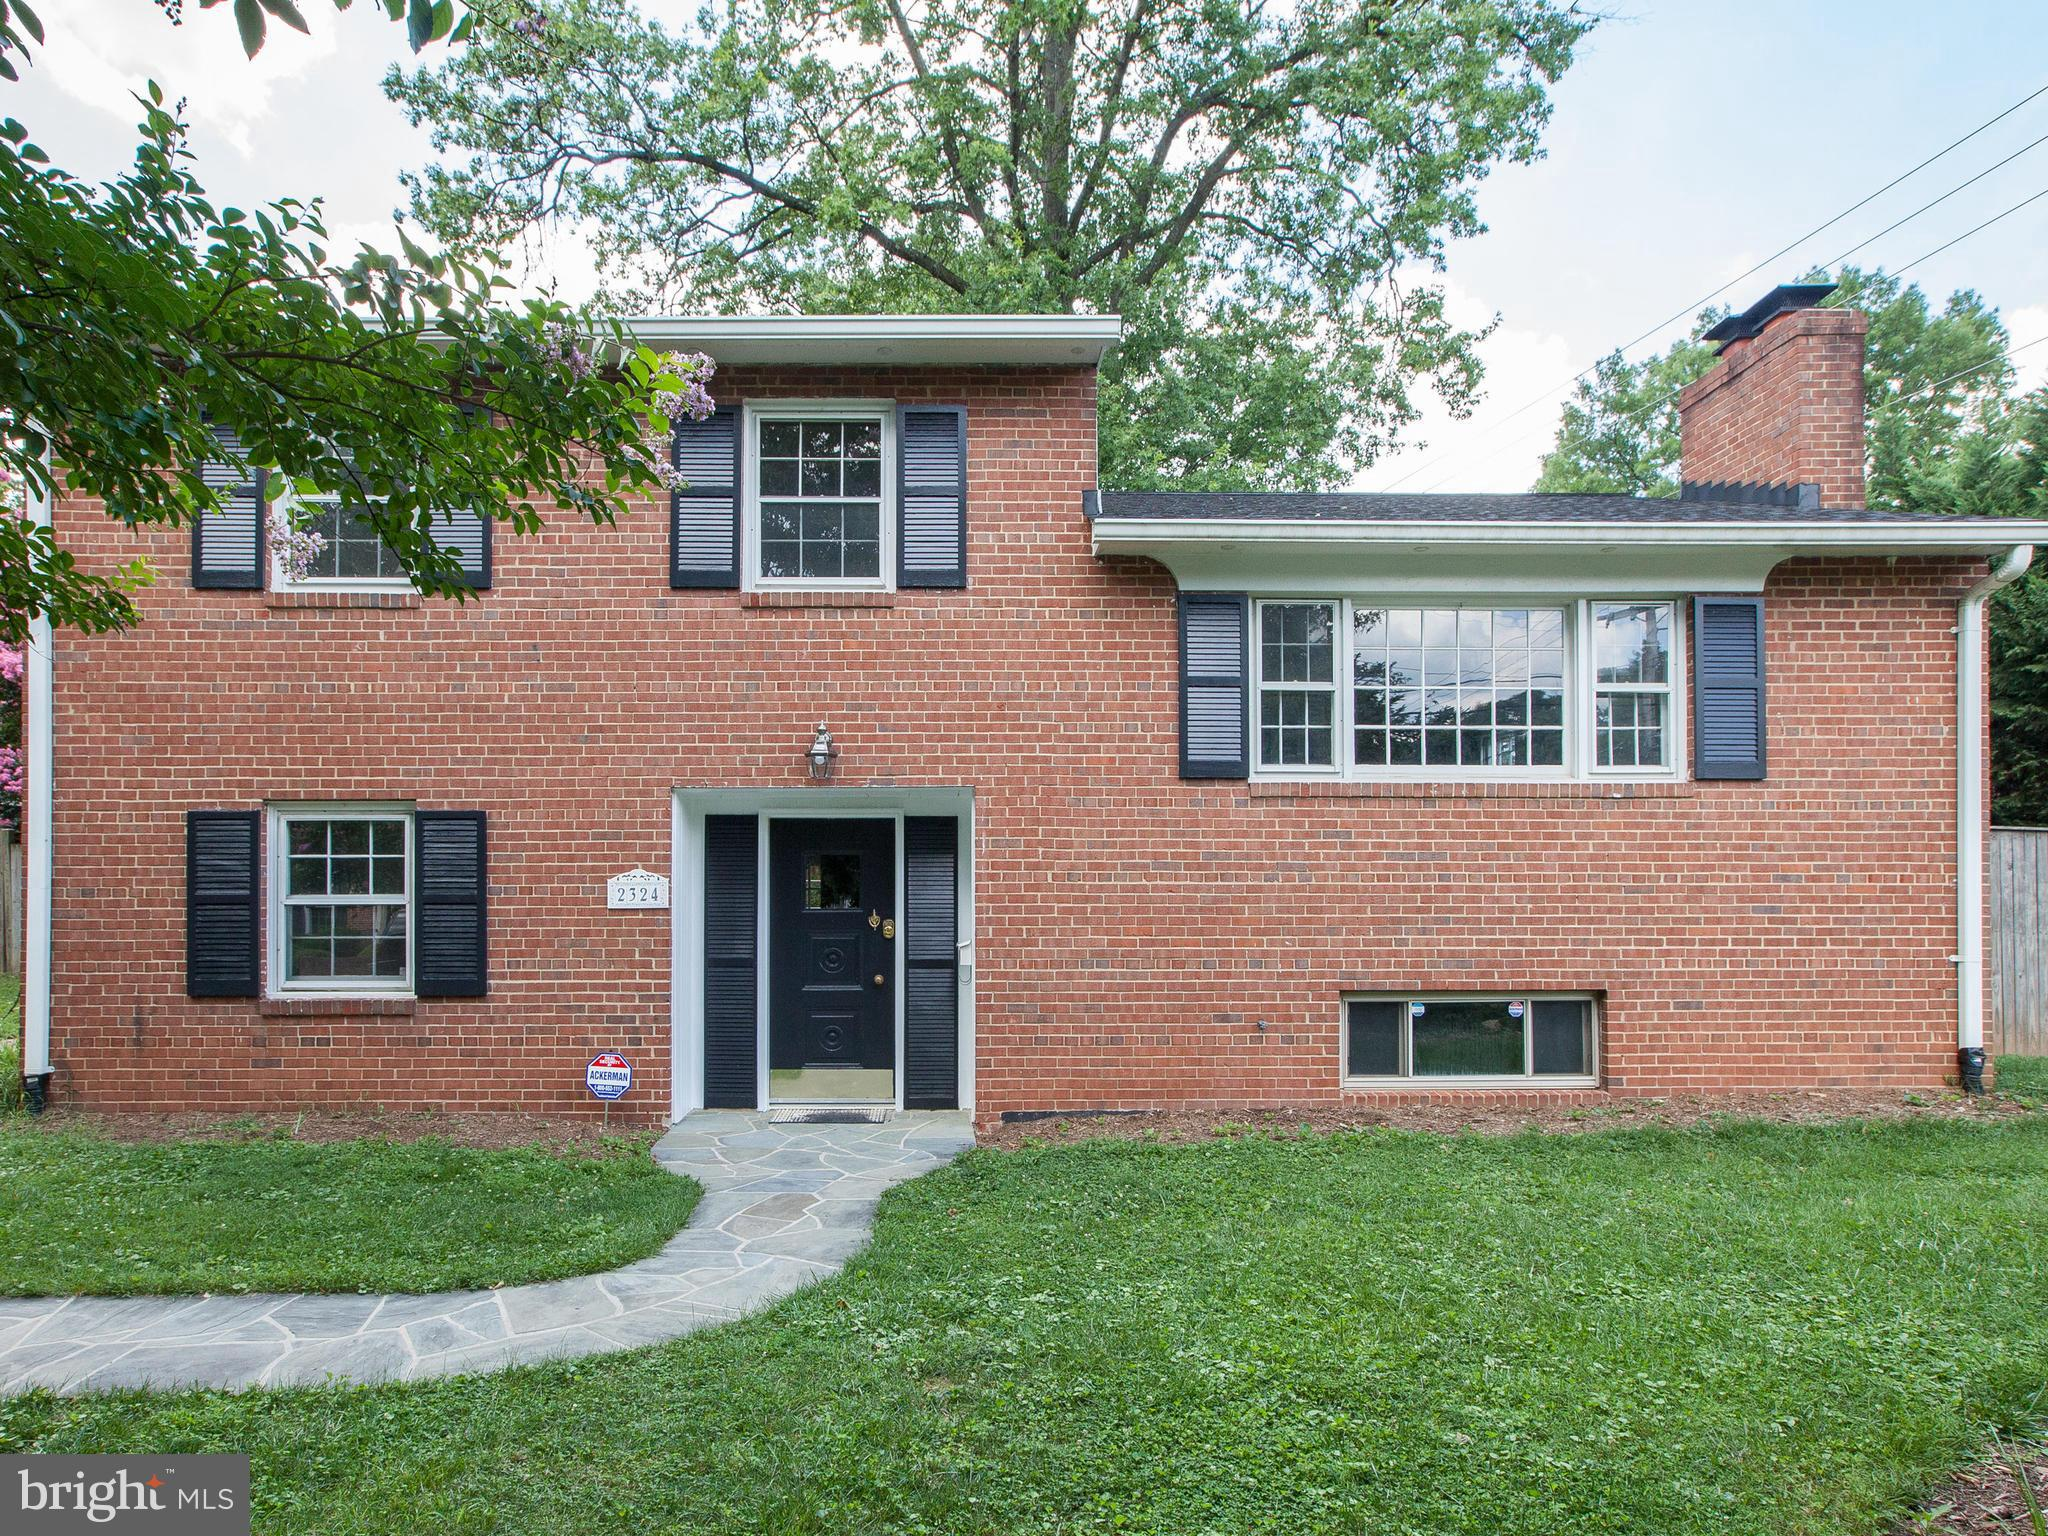 4 BR/2.5 BA brick home on a corner lot in N Arlington w/ fresh paint + refinished floors! Sunny LR w WB FP followed by a formal DR that overlooks a large, fenced back yard. Kitchen features new granite counters +gorgeous cherry cabinets & opens to a rear patio perfect for entertaining. 2 BRs up + 2 more down+ rec room w wb FP! 6 blocks to E. Falls Church Metro + I-66! Yorktown HS pyramid.